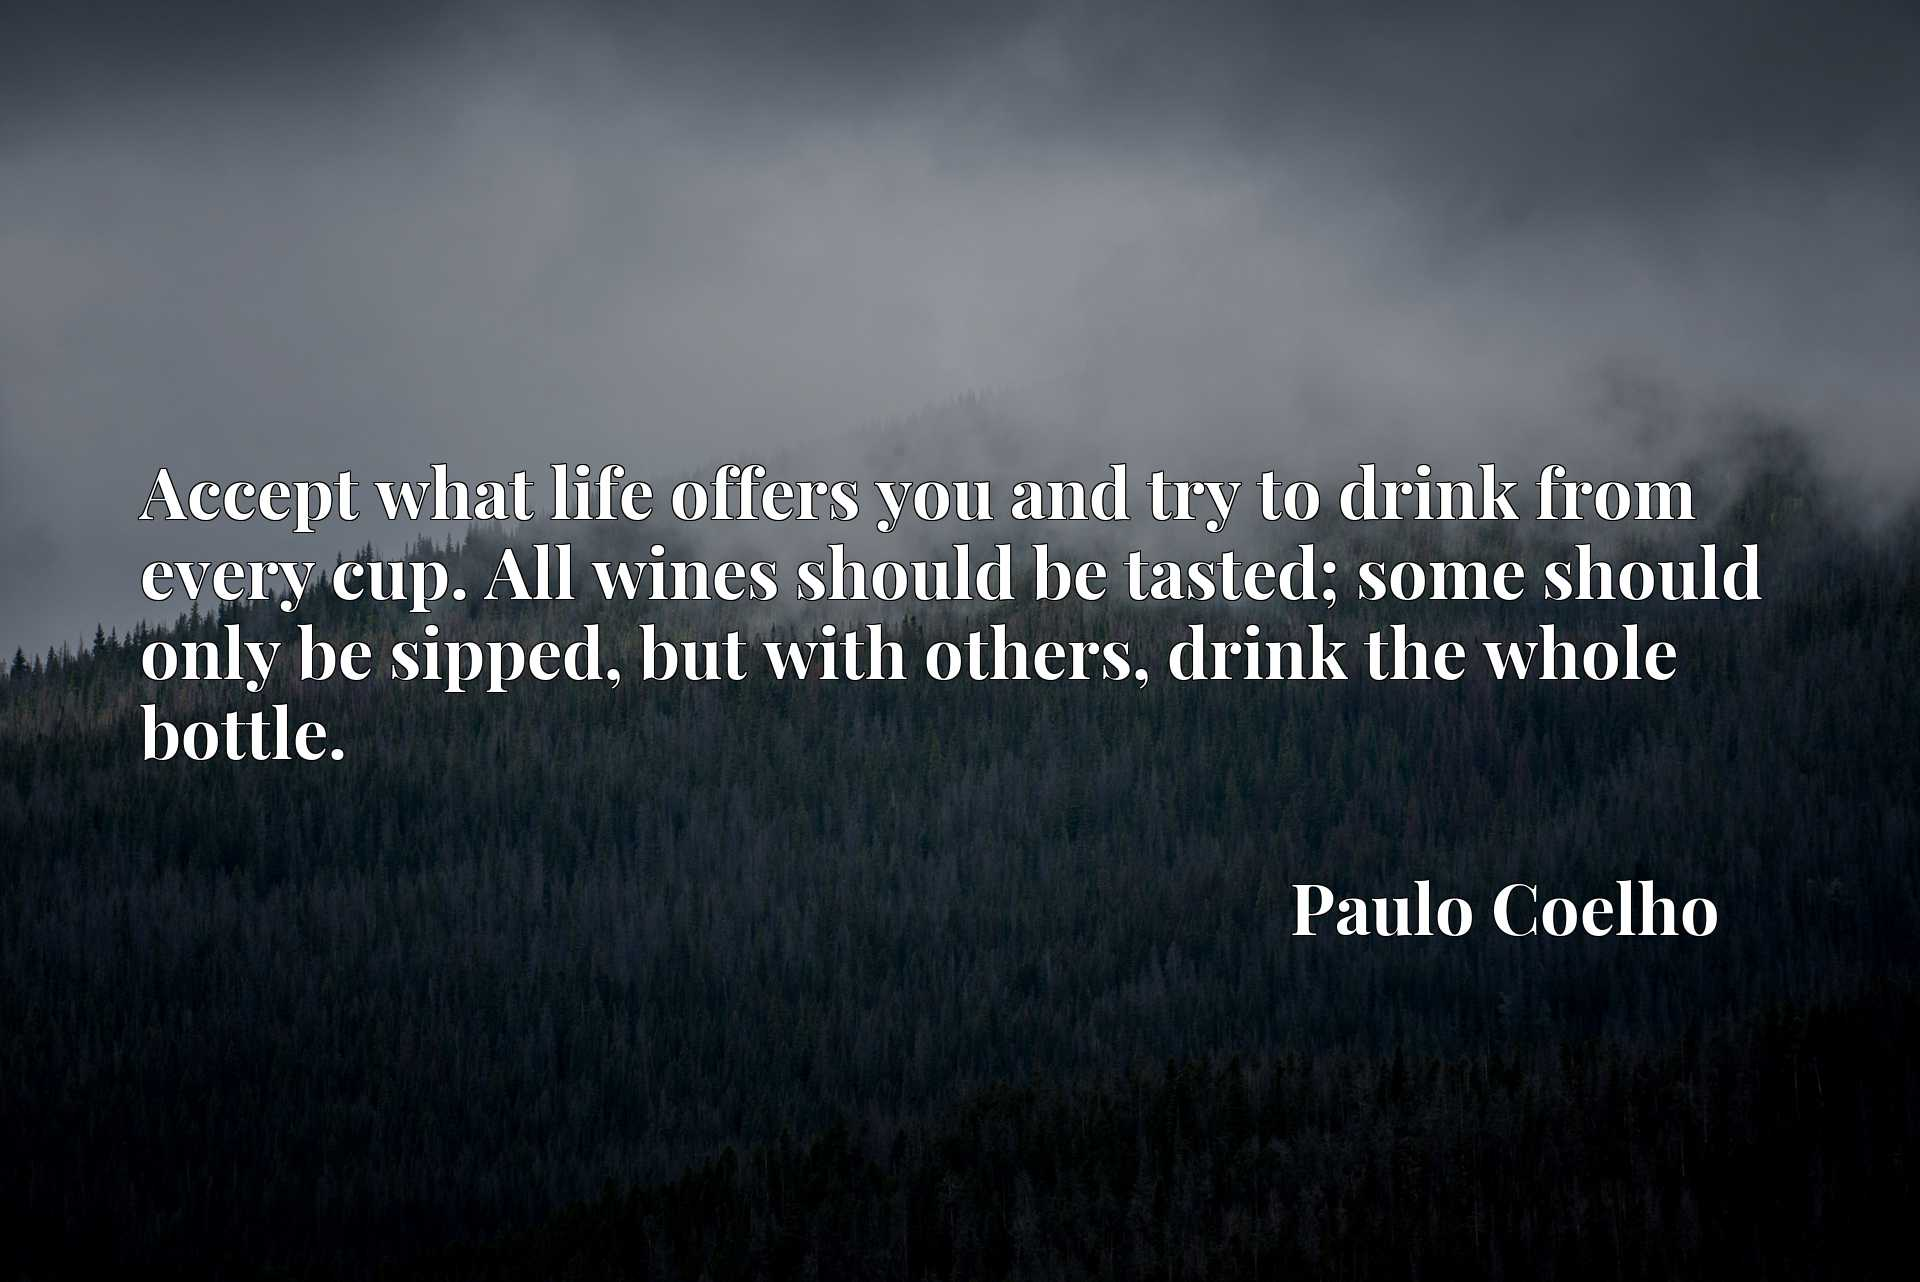 Quote Picture :Accept what life offers you and try to drink from every cup. All wines should be tasted; some should only be sipped, but with others, drink the whole bottle.